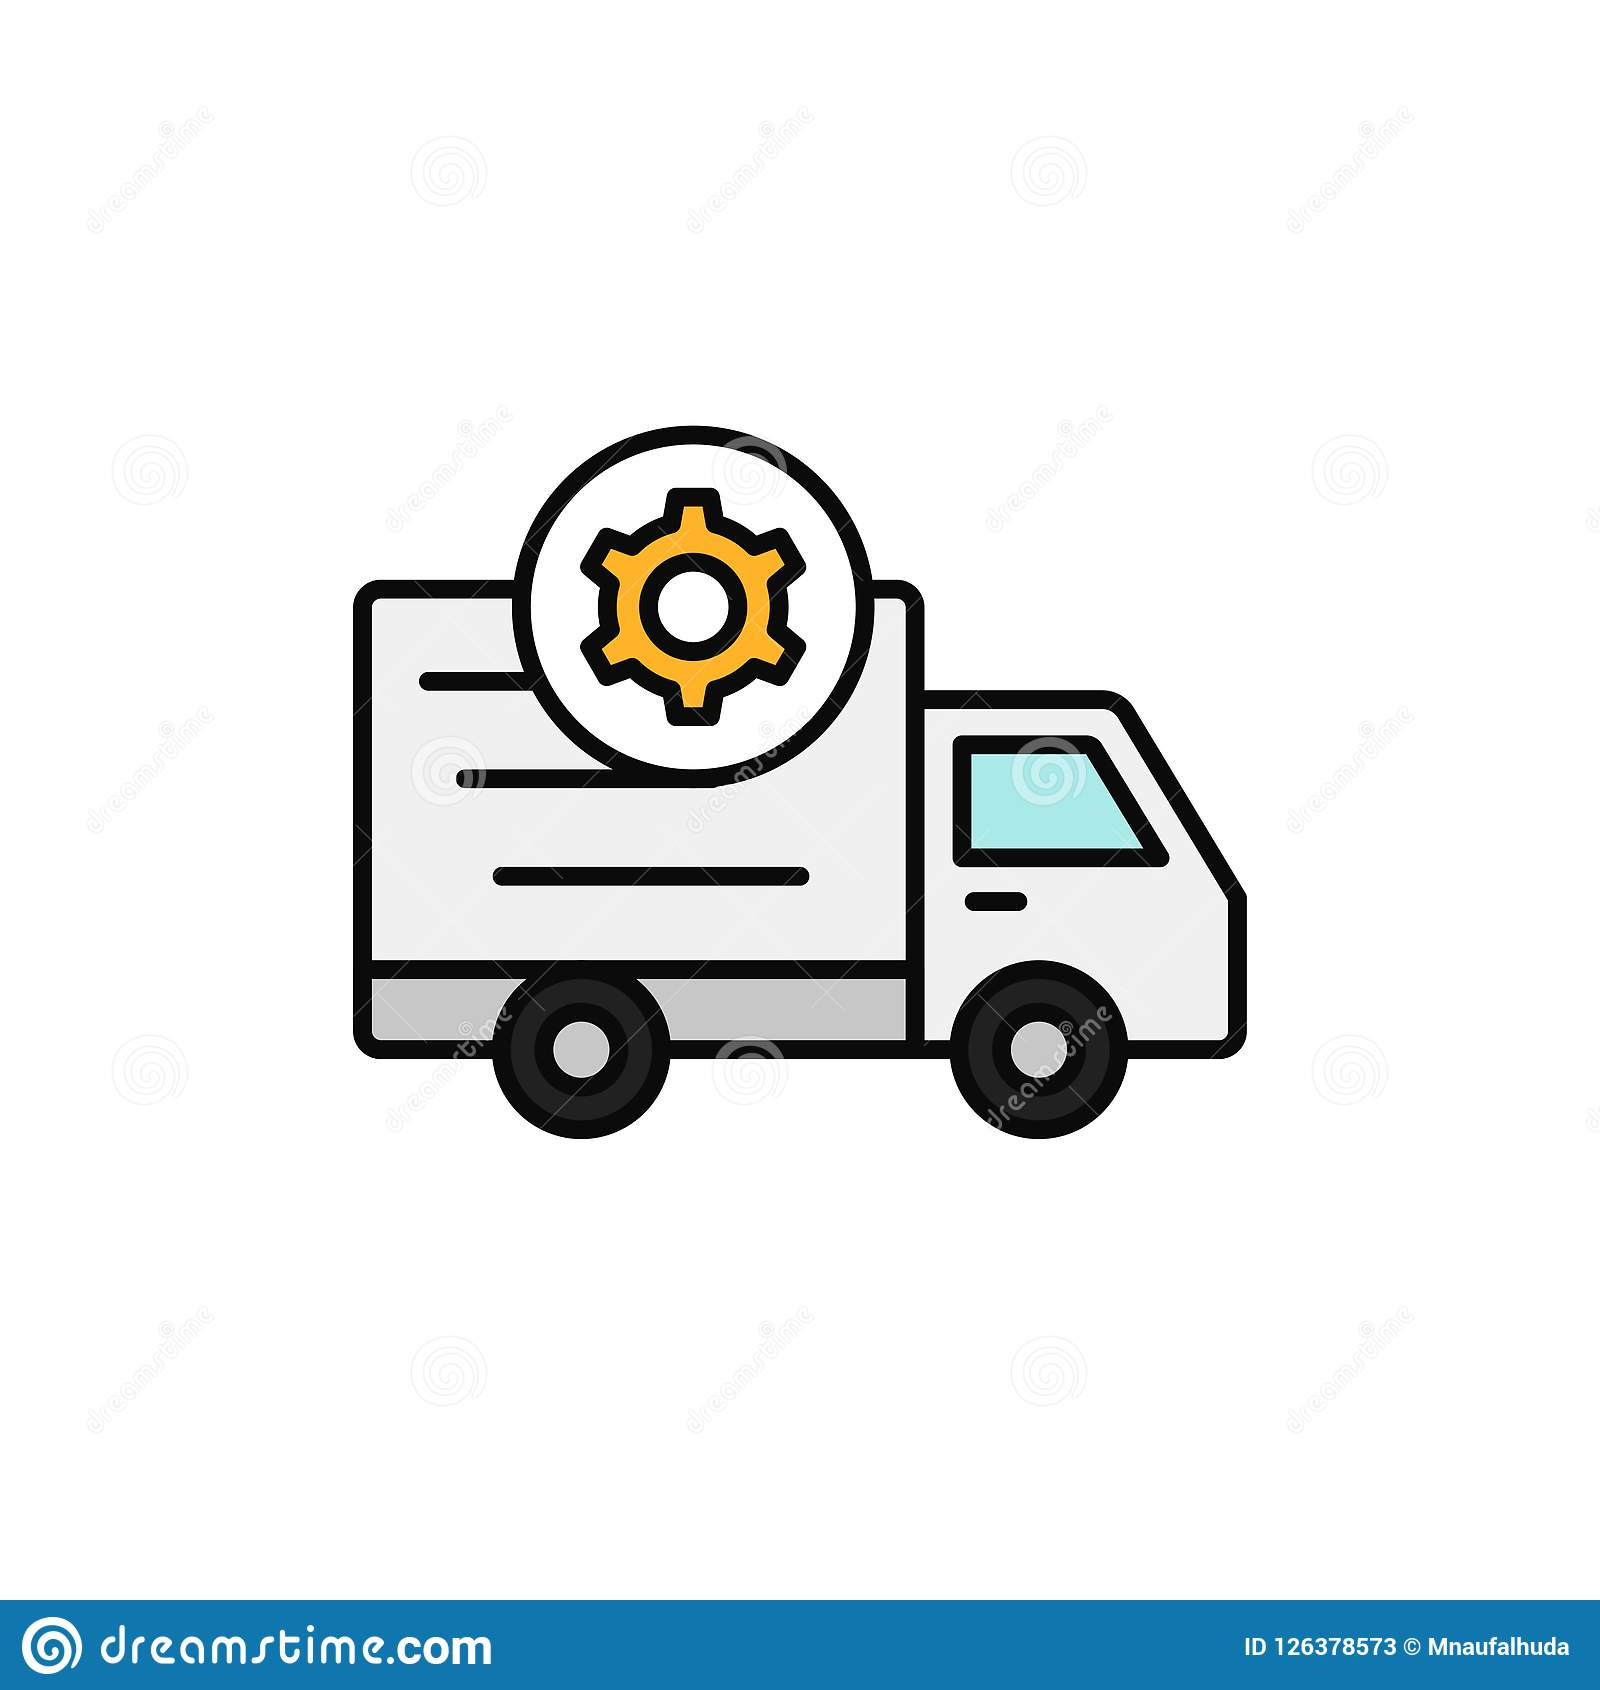 Delivery truck gear icon. shipment setting or machine car problem illustration. simple outline vector symbol design.